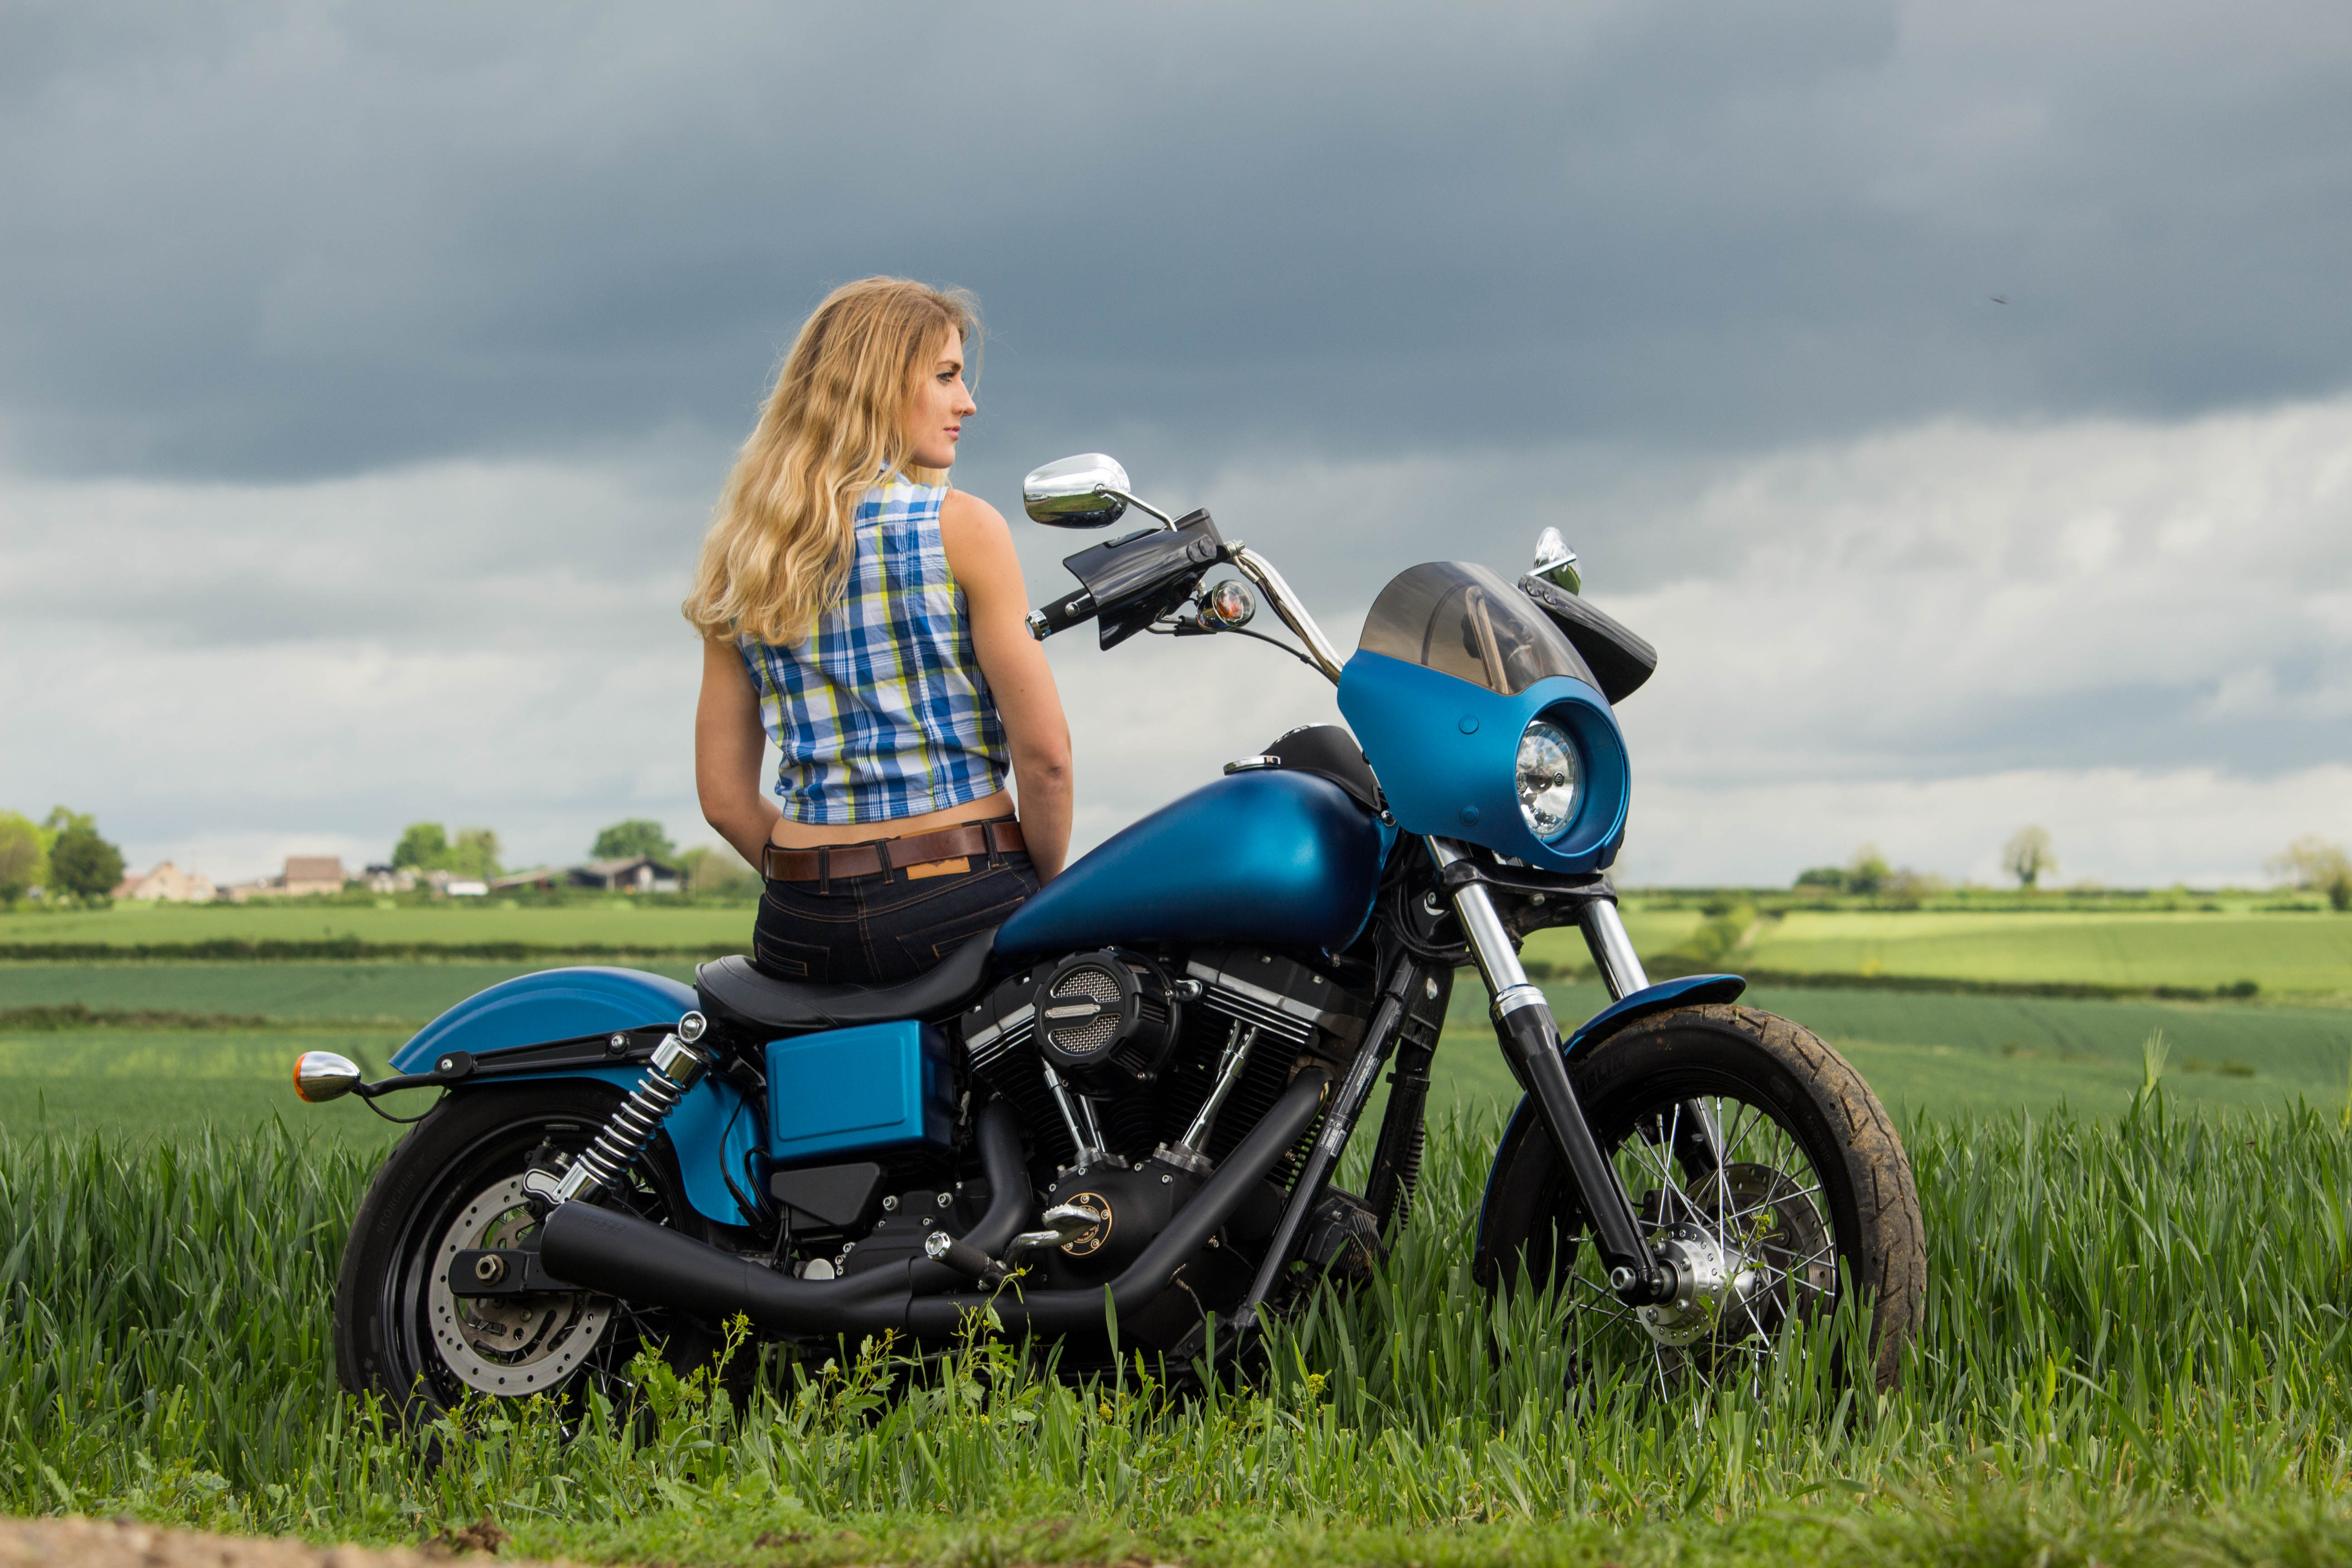 Vance & Hince 2-1 UpSweep Exhaust Review » The Girl On A Bike